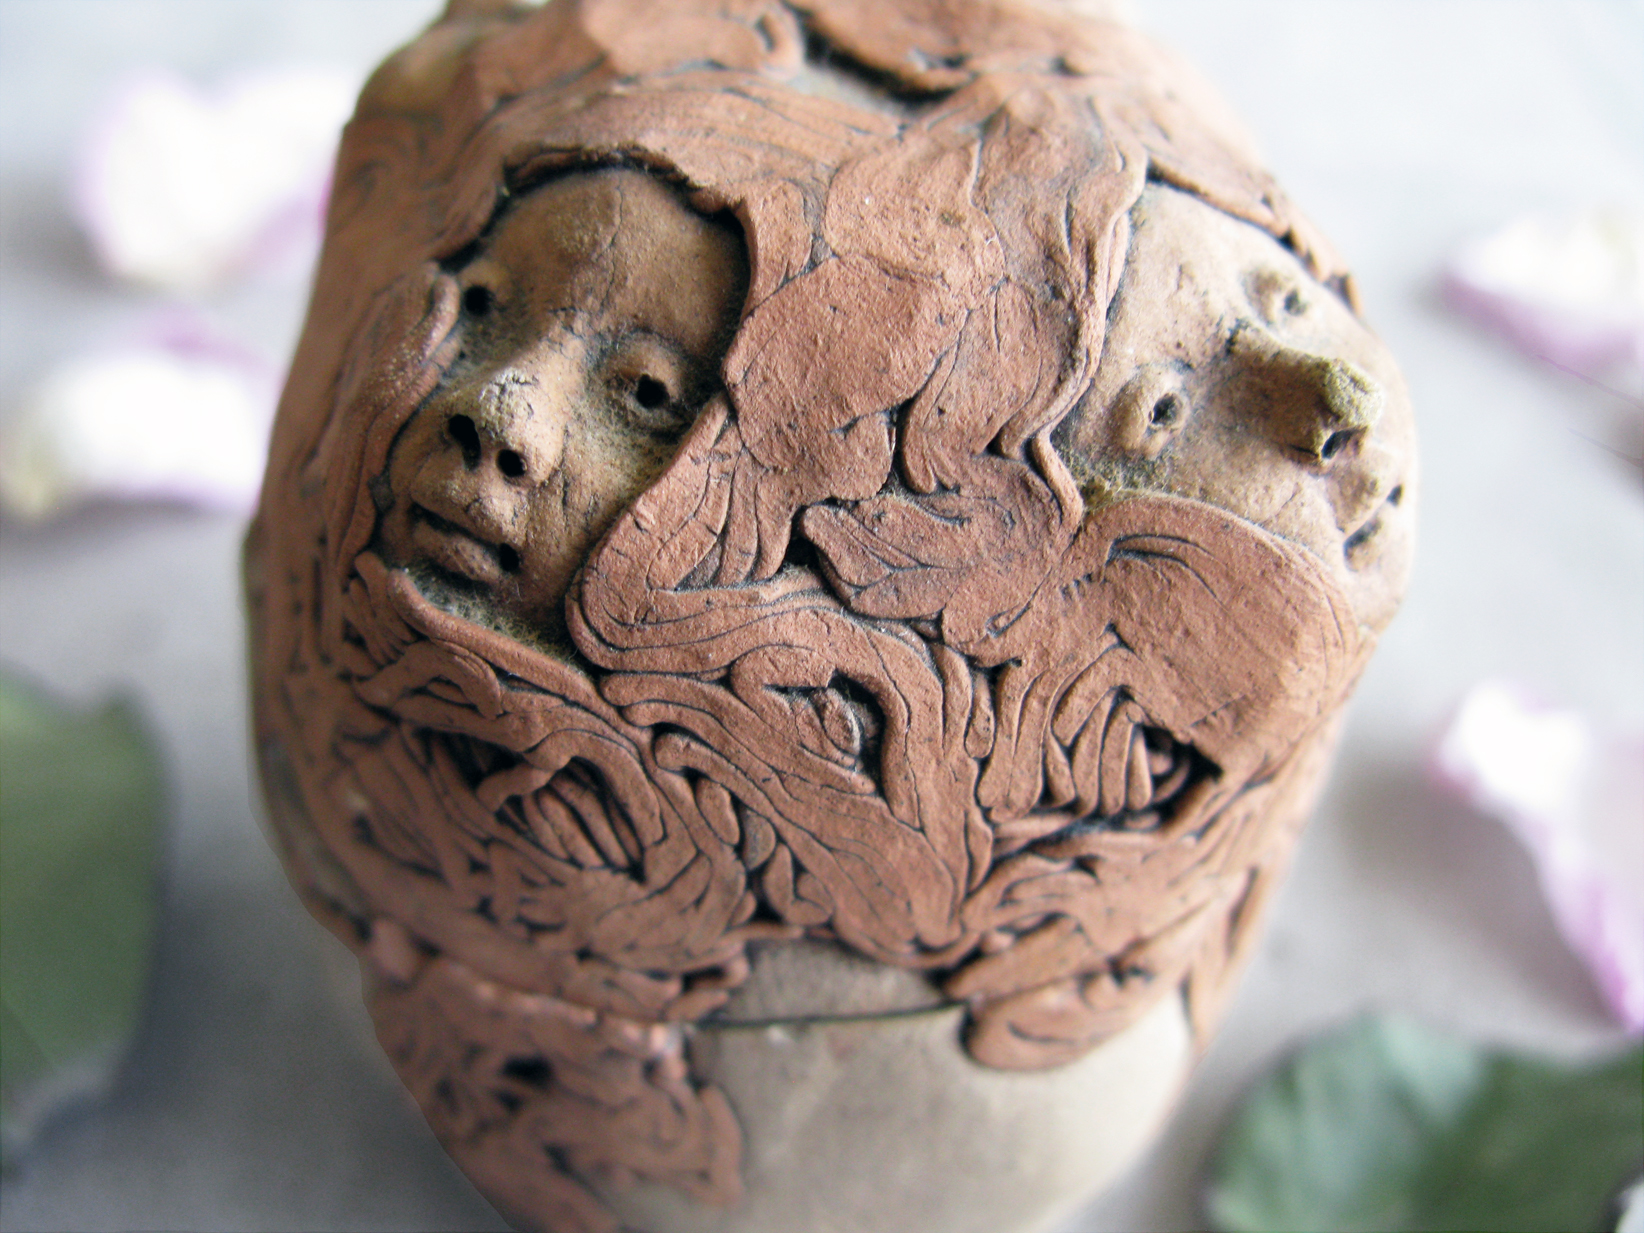 pottery jar with heads